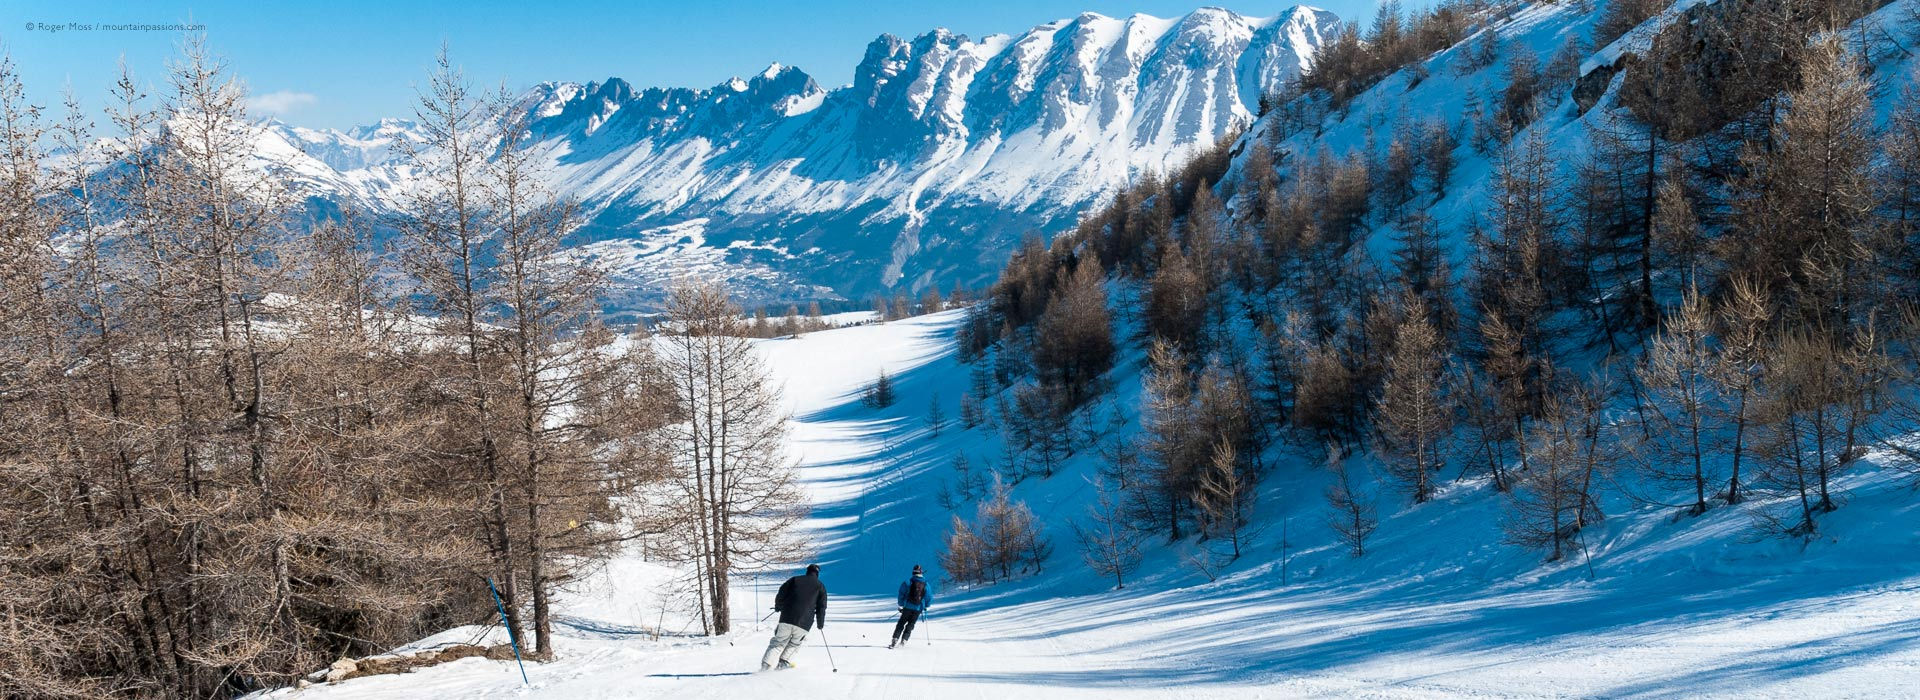 Two skiers descending tree-lined piste with mountain background.